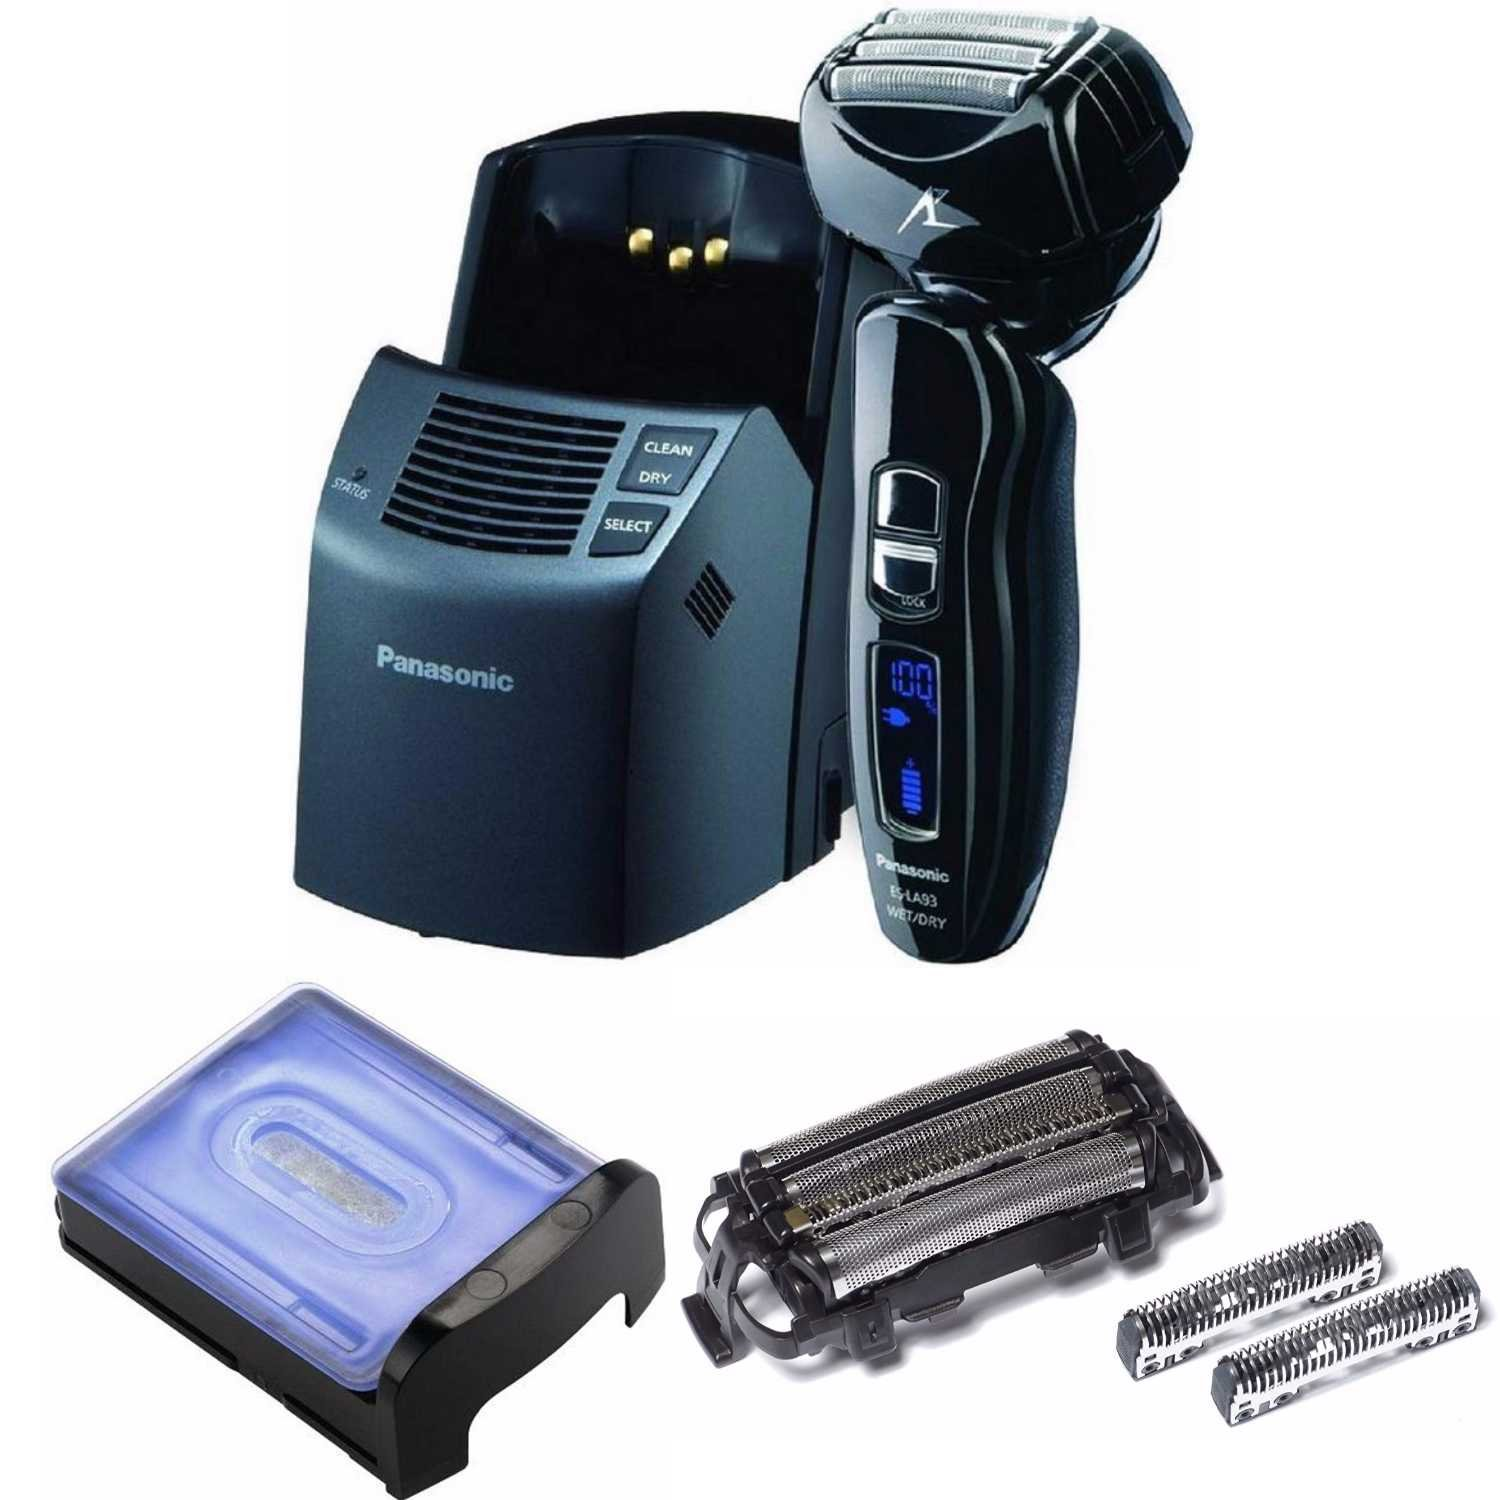 Panasonic Arc4 Men's Razor w/HydraClean Solution and Repl. Inner Blade and Foil